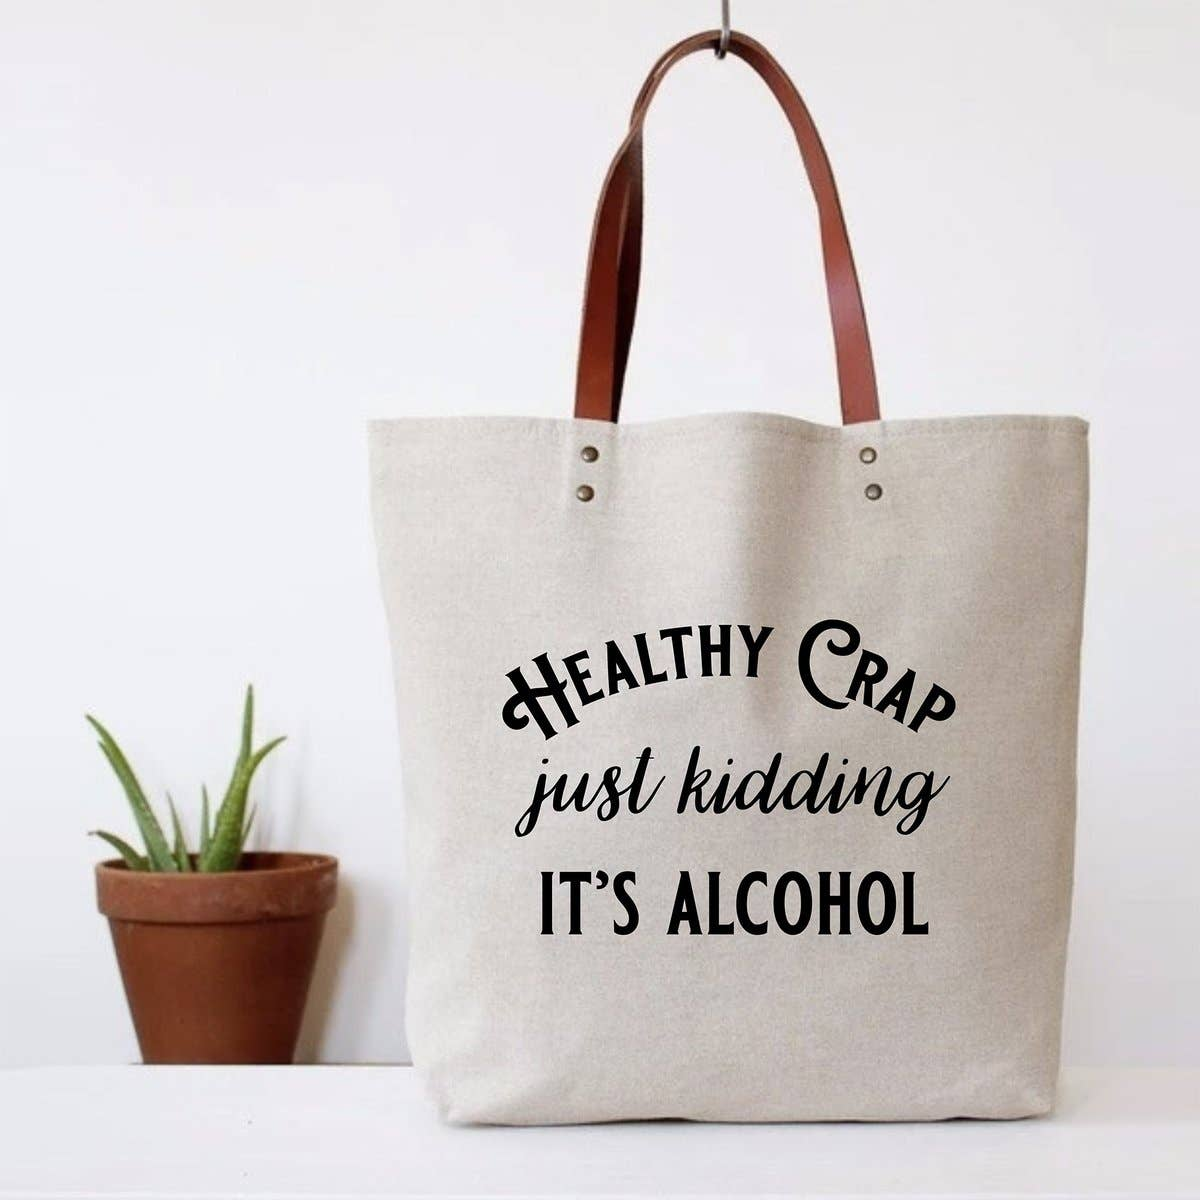 FUN CLUB - Healthy Crap Tote Bag